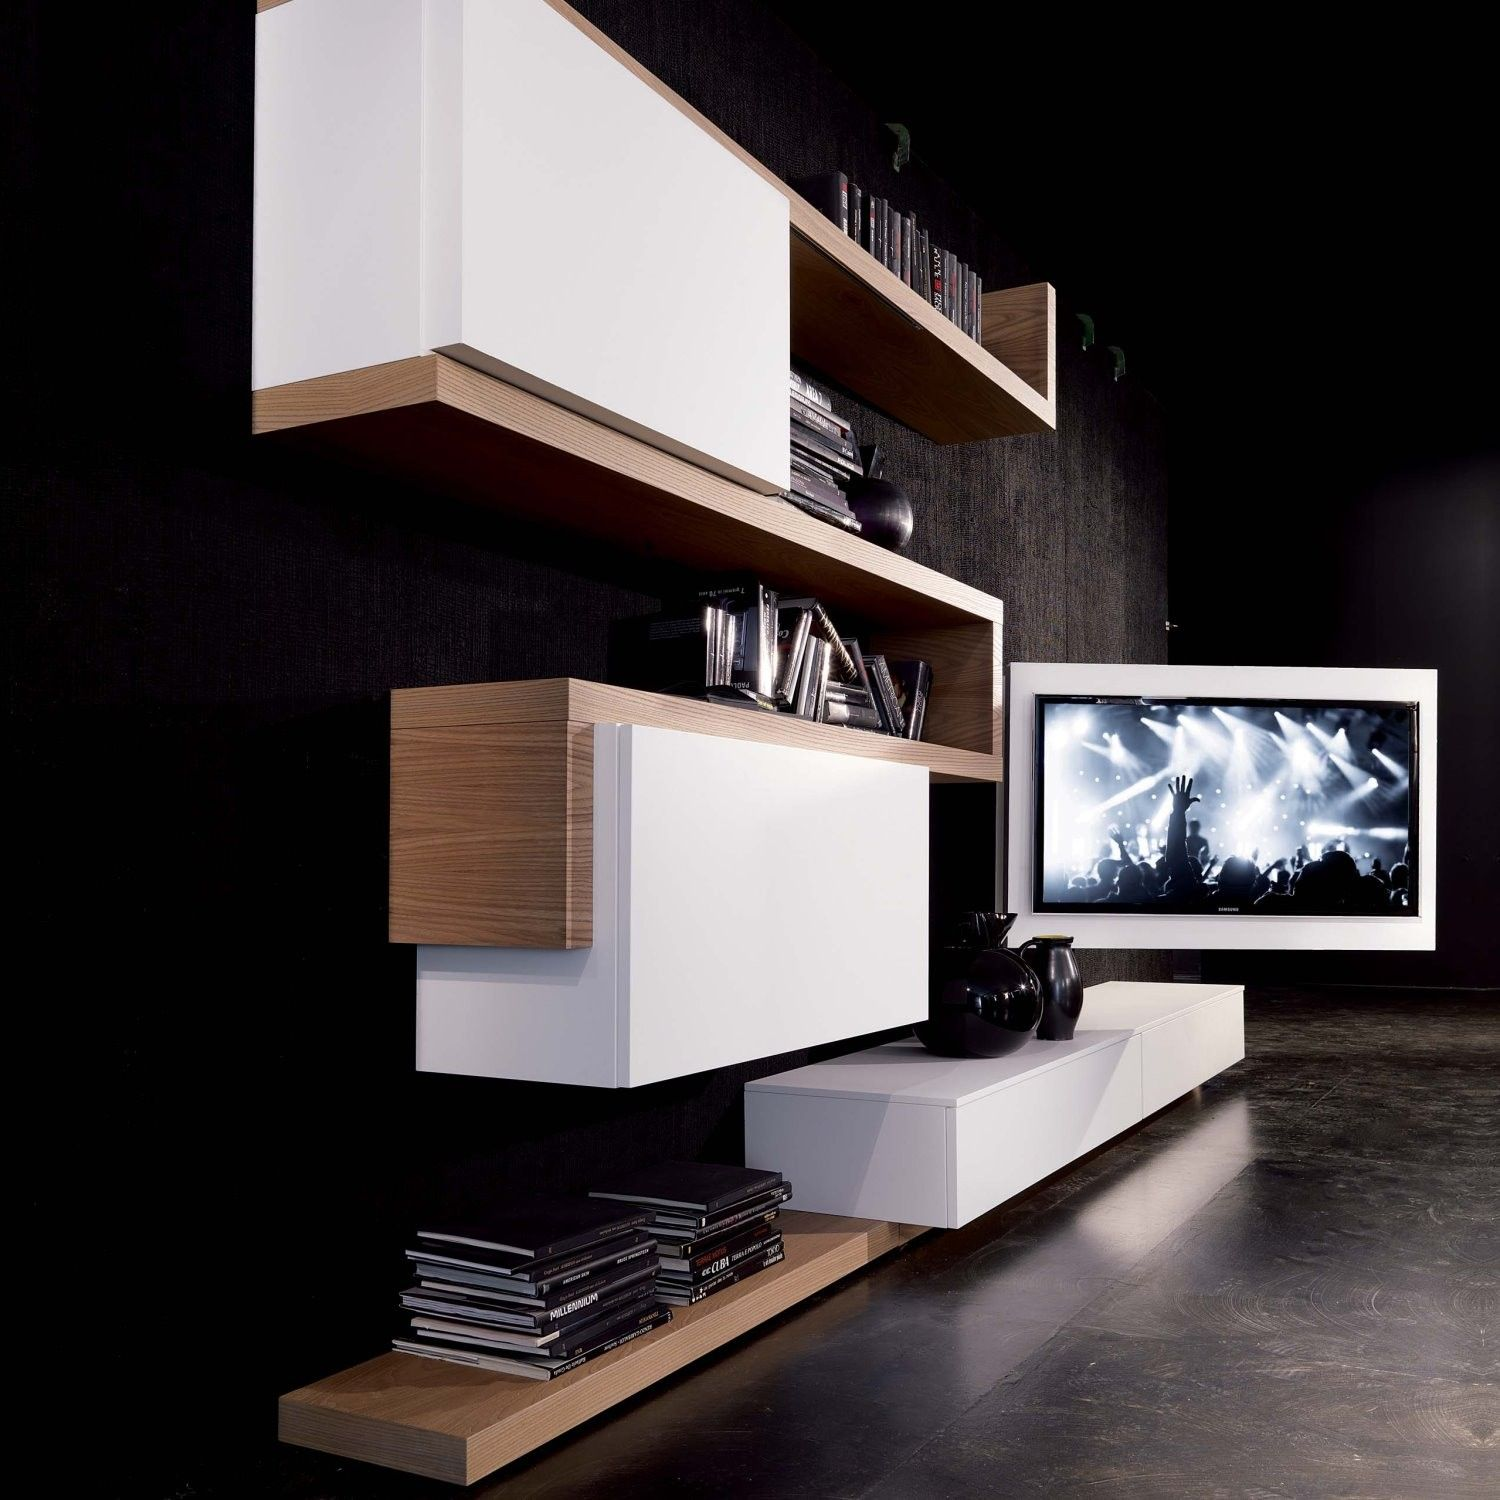 rack tv m bel h ngend schwenkbar und zu ffnen arredaclick wohnzimmer pinterest tv. Black Bedroom Furniture Sets. Home Design Ideas